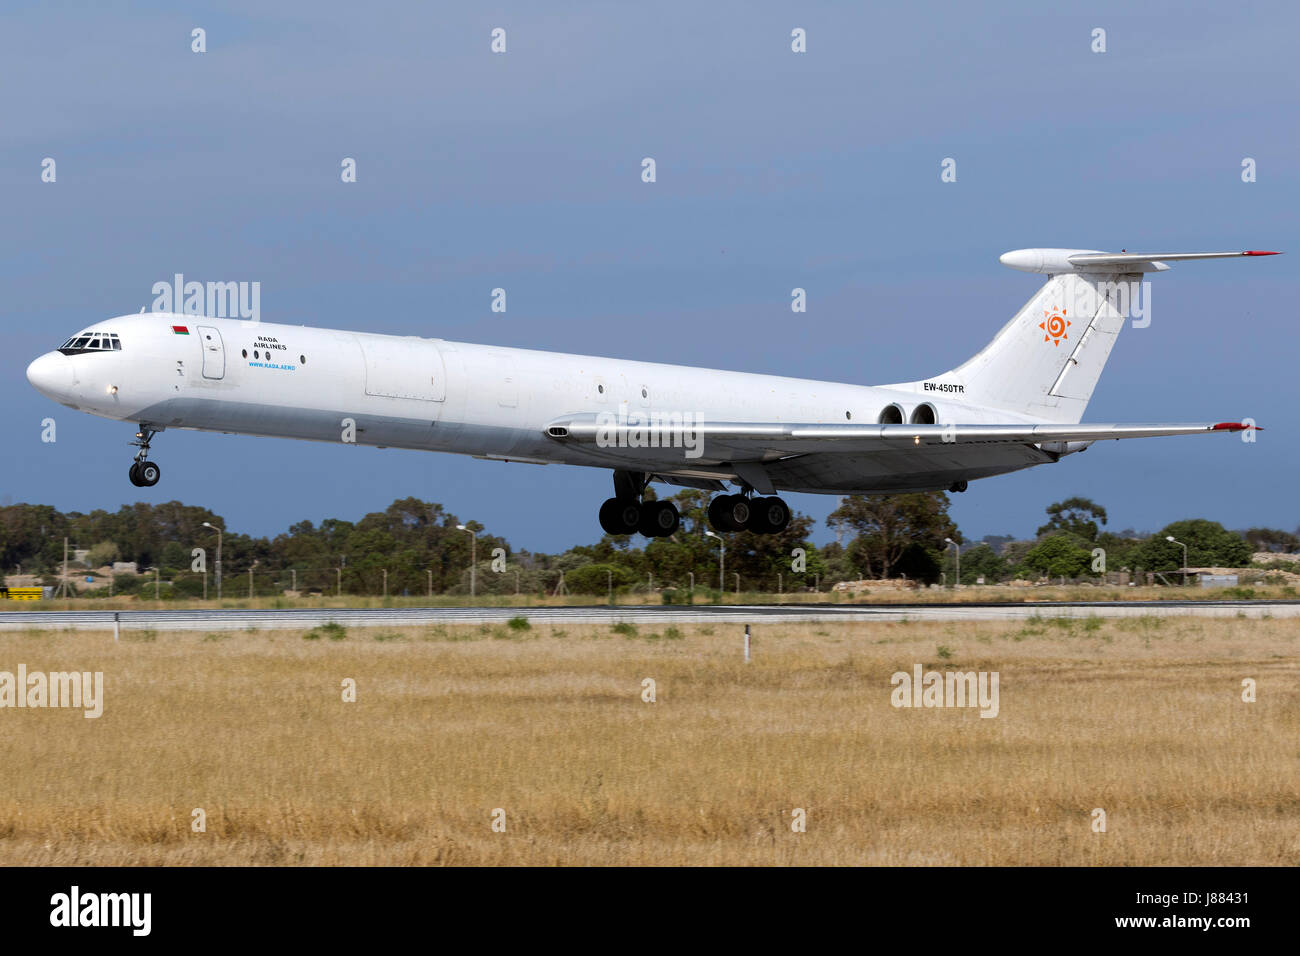 Rada Airlines Ilyushin Il-62MGr [EW-450TR] landing runway 31. This aircraft is extremely rare nowadays! - Stock Image